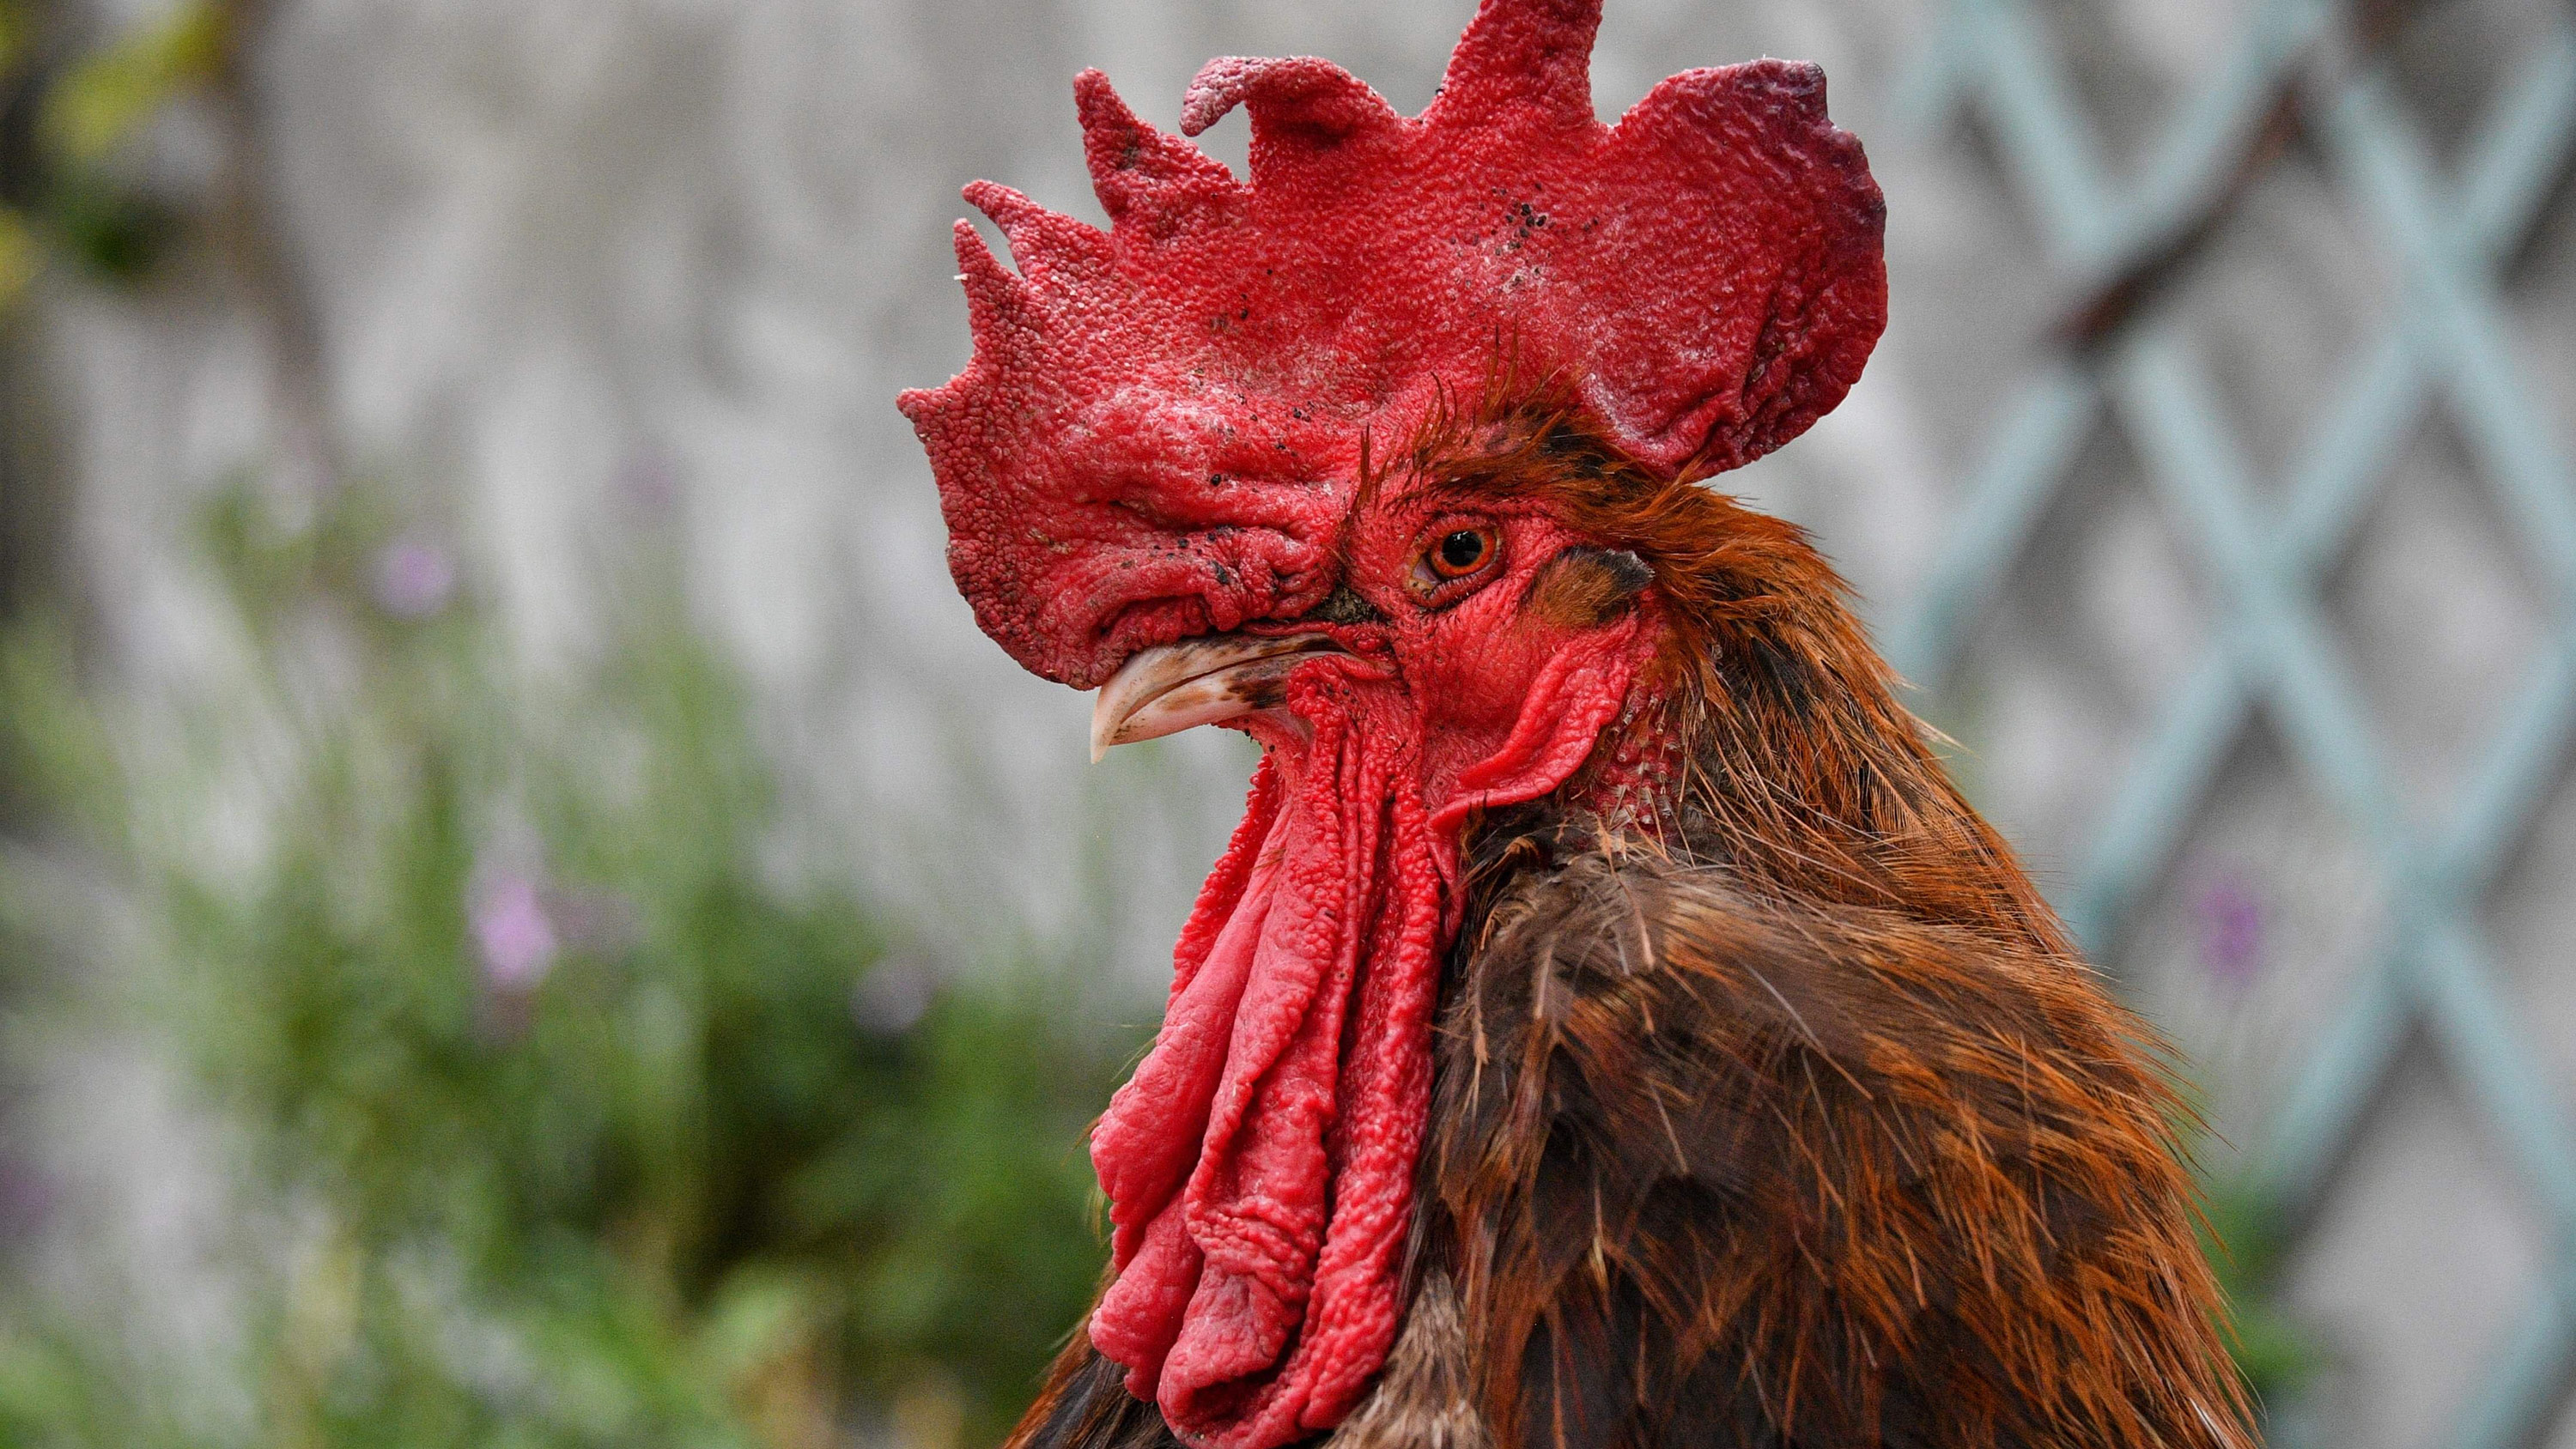 Why a rooster is on trial in France